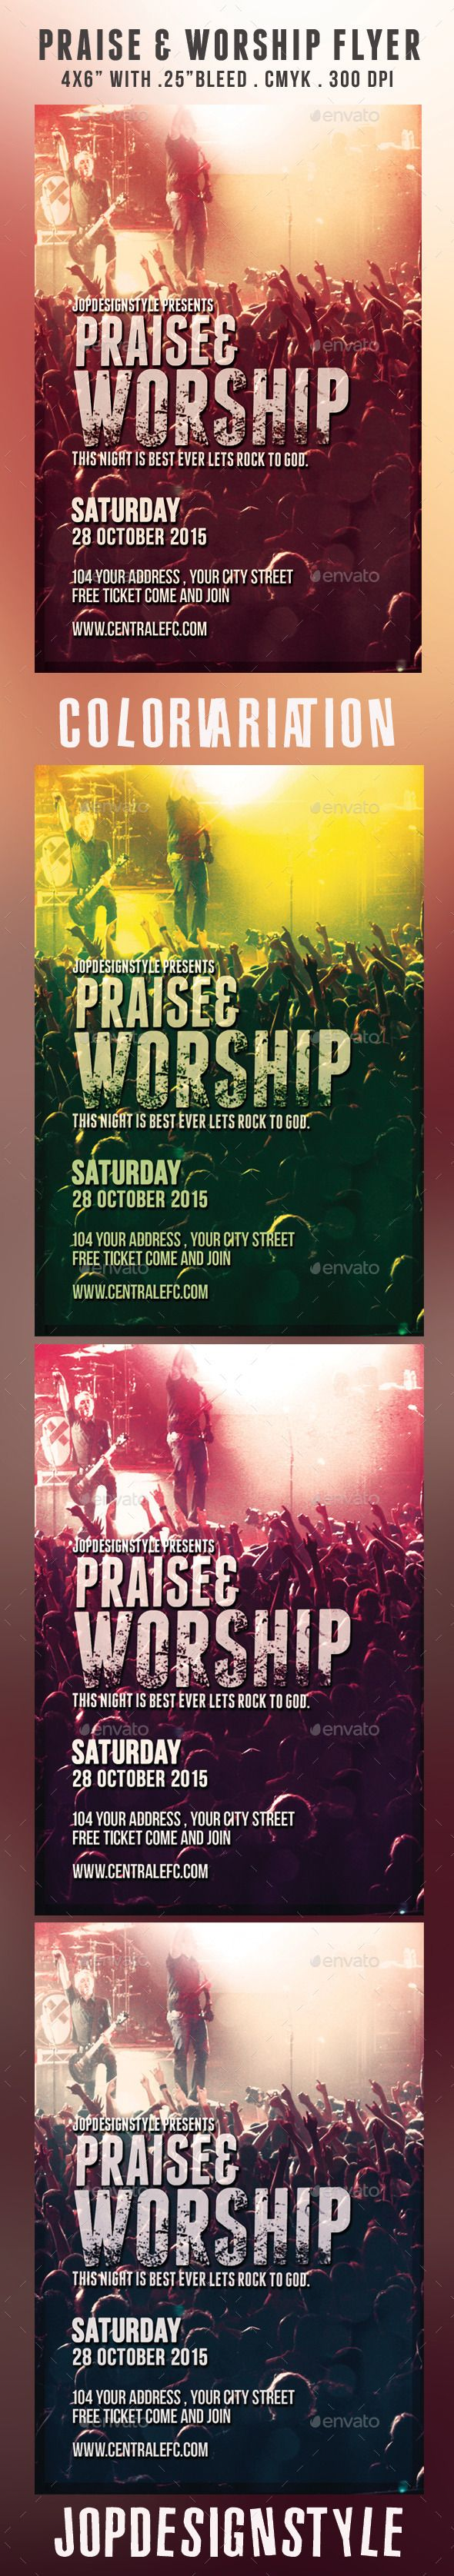 best images about top church flyer template praise and worship flyer